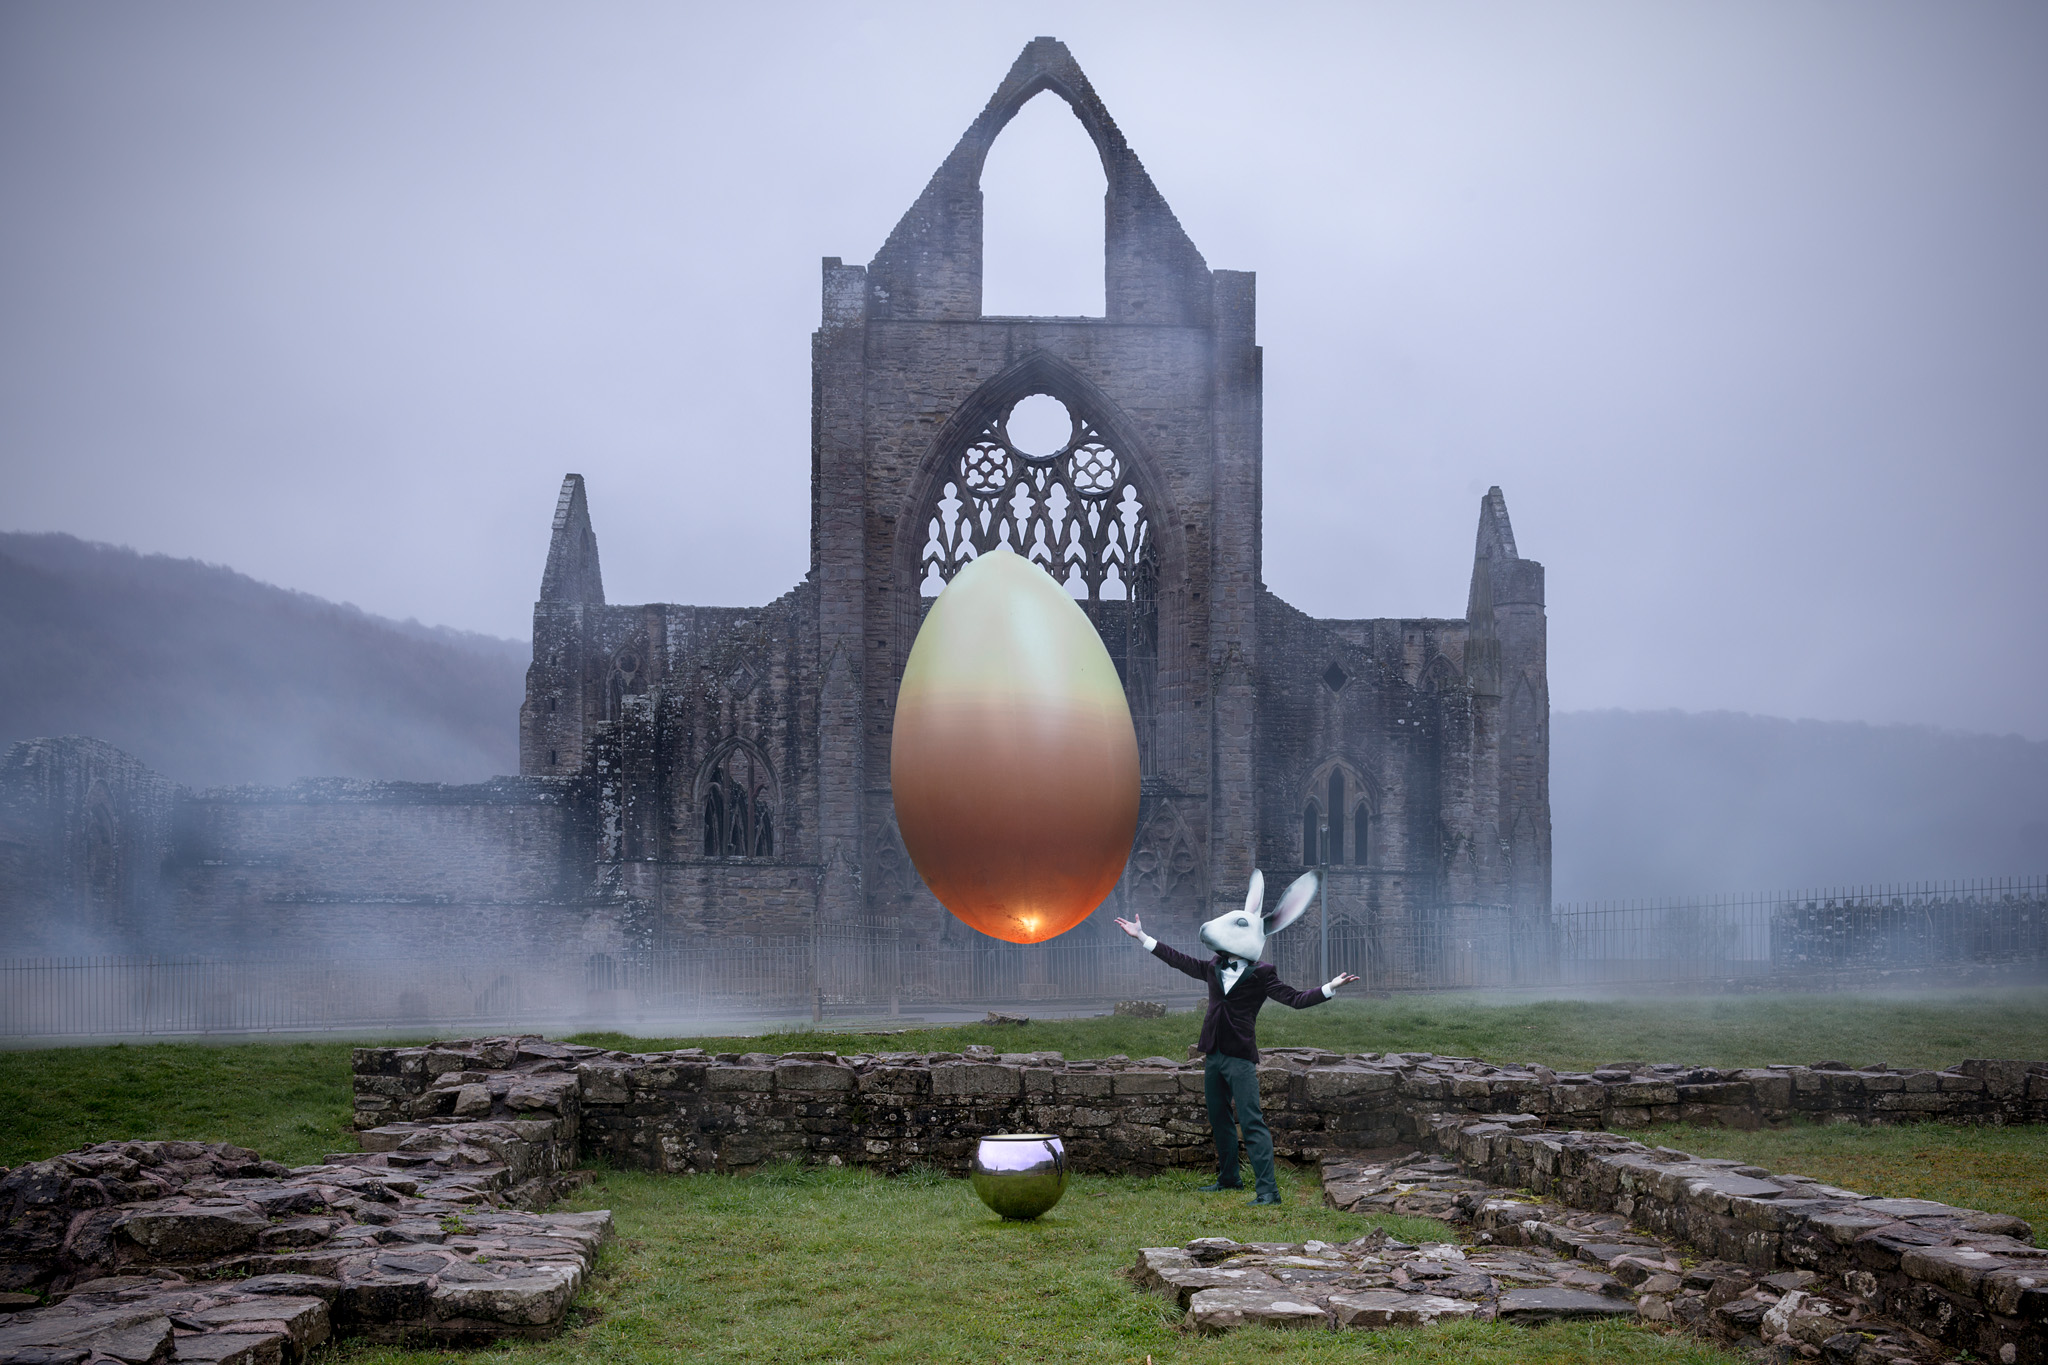 The floating egg was created by the ingenious folk at  Guineapig . It was filled with a mix of helium and air and floated over a jet of air from the chrome ball below. Photographed at Tintern Abbey